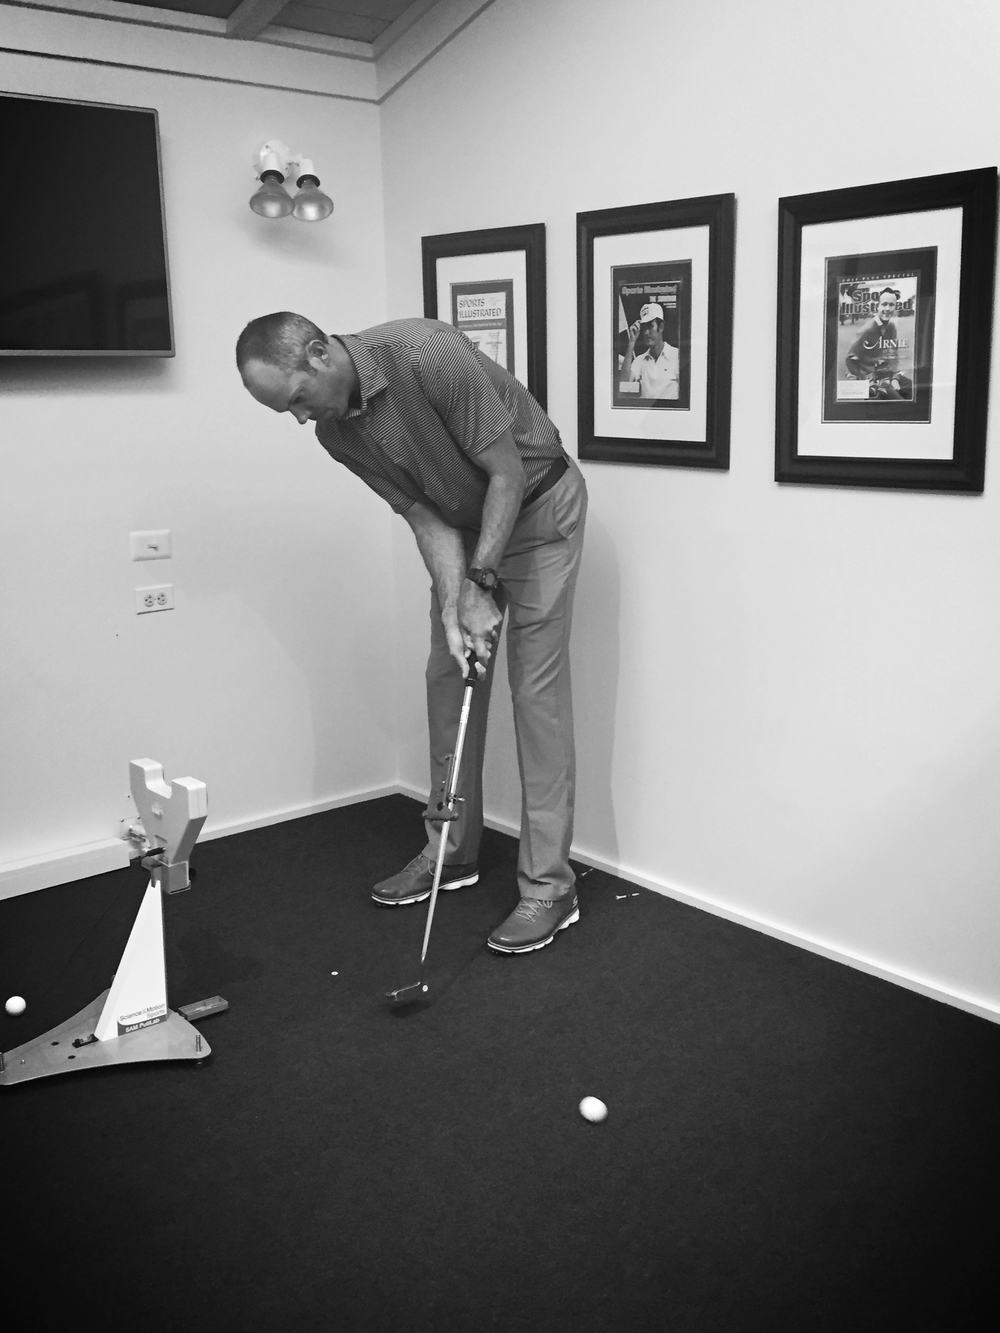 PGA Tour player Matt Kuchar checks his stroke at the Caves Valley Performance Center.